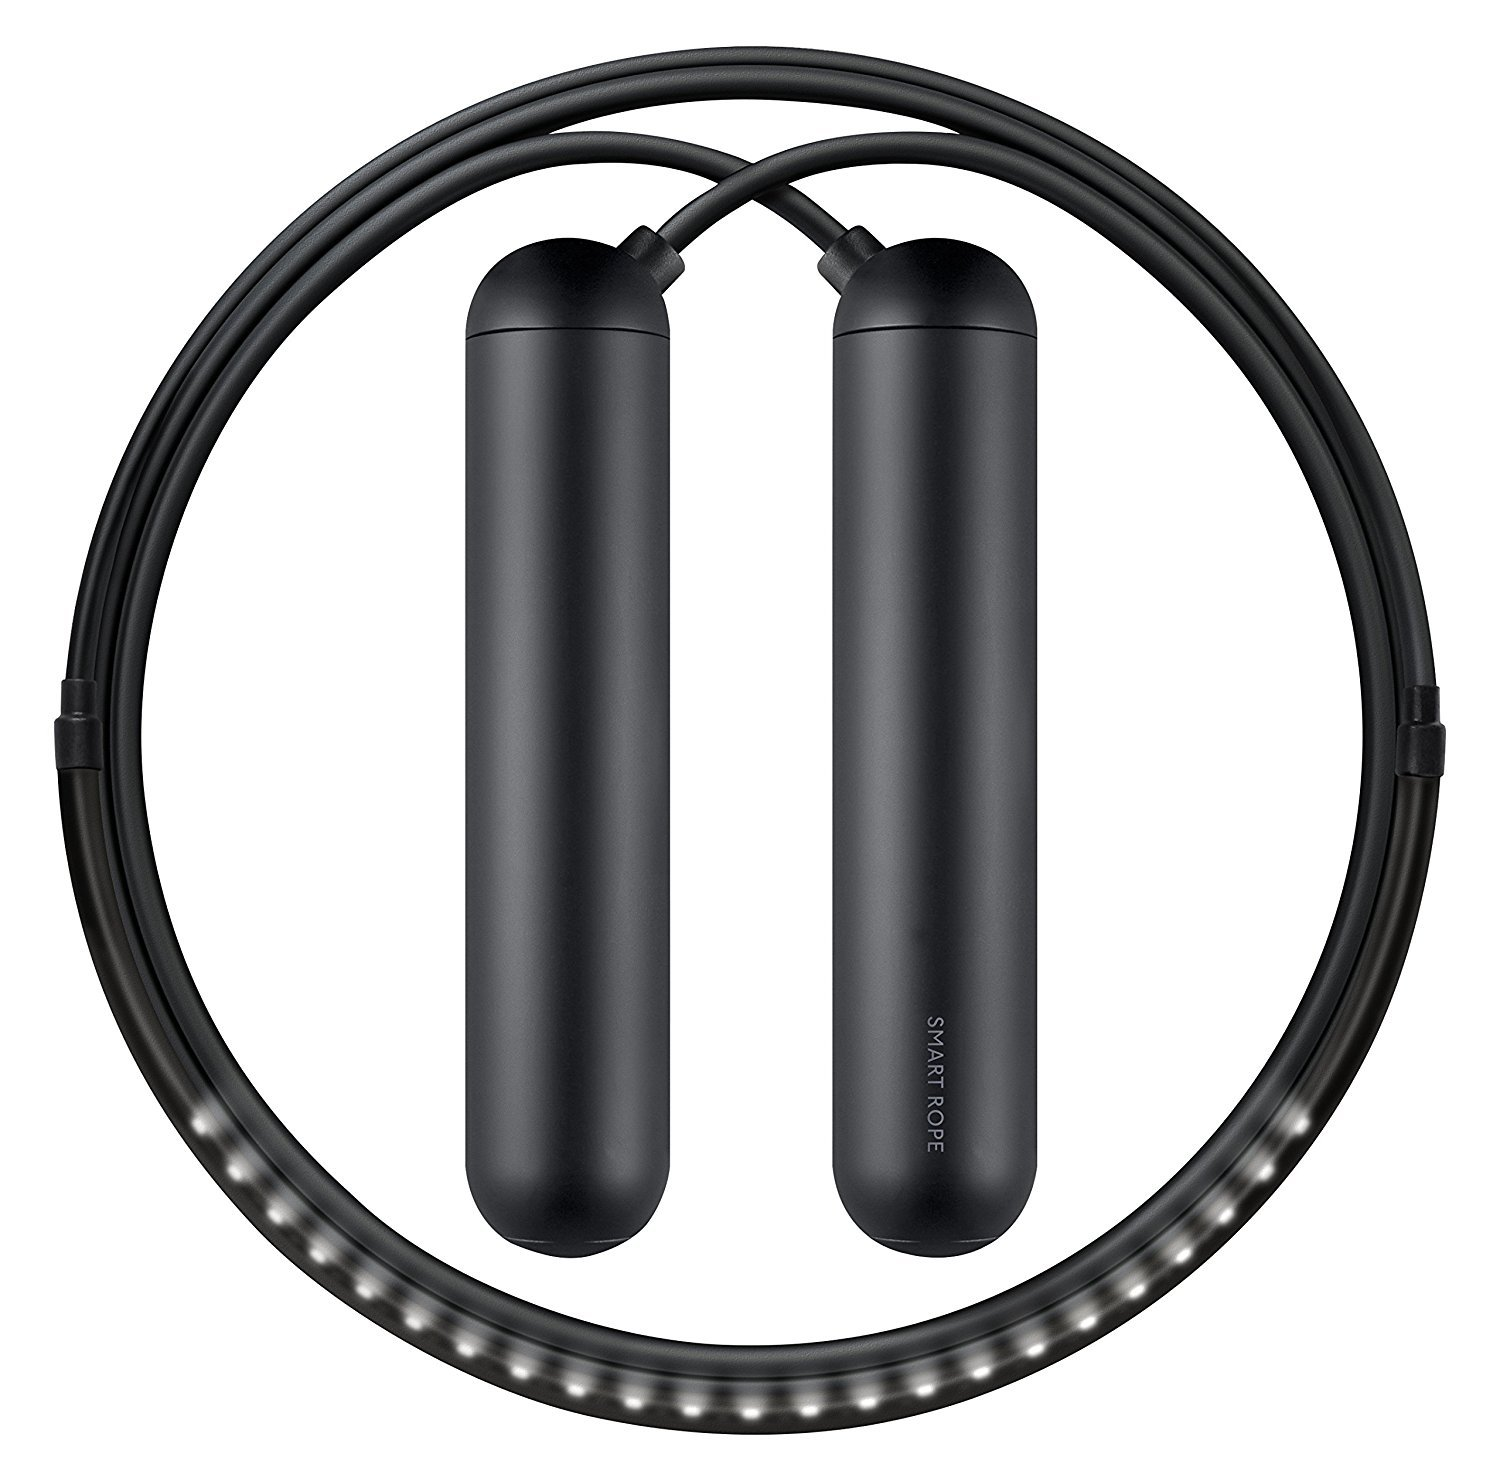 TANGRAM Factory Smart Rope - LED Embedded Jump Rope (Black, Small) by TANGRAM (Image #1)